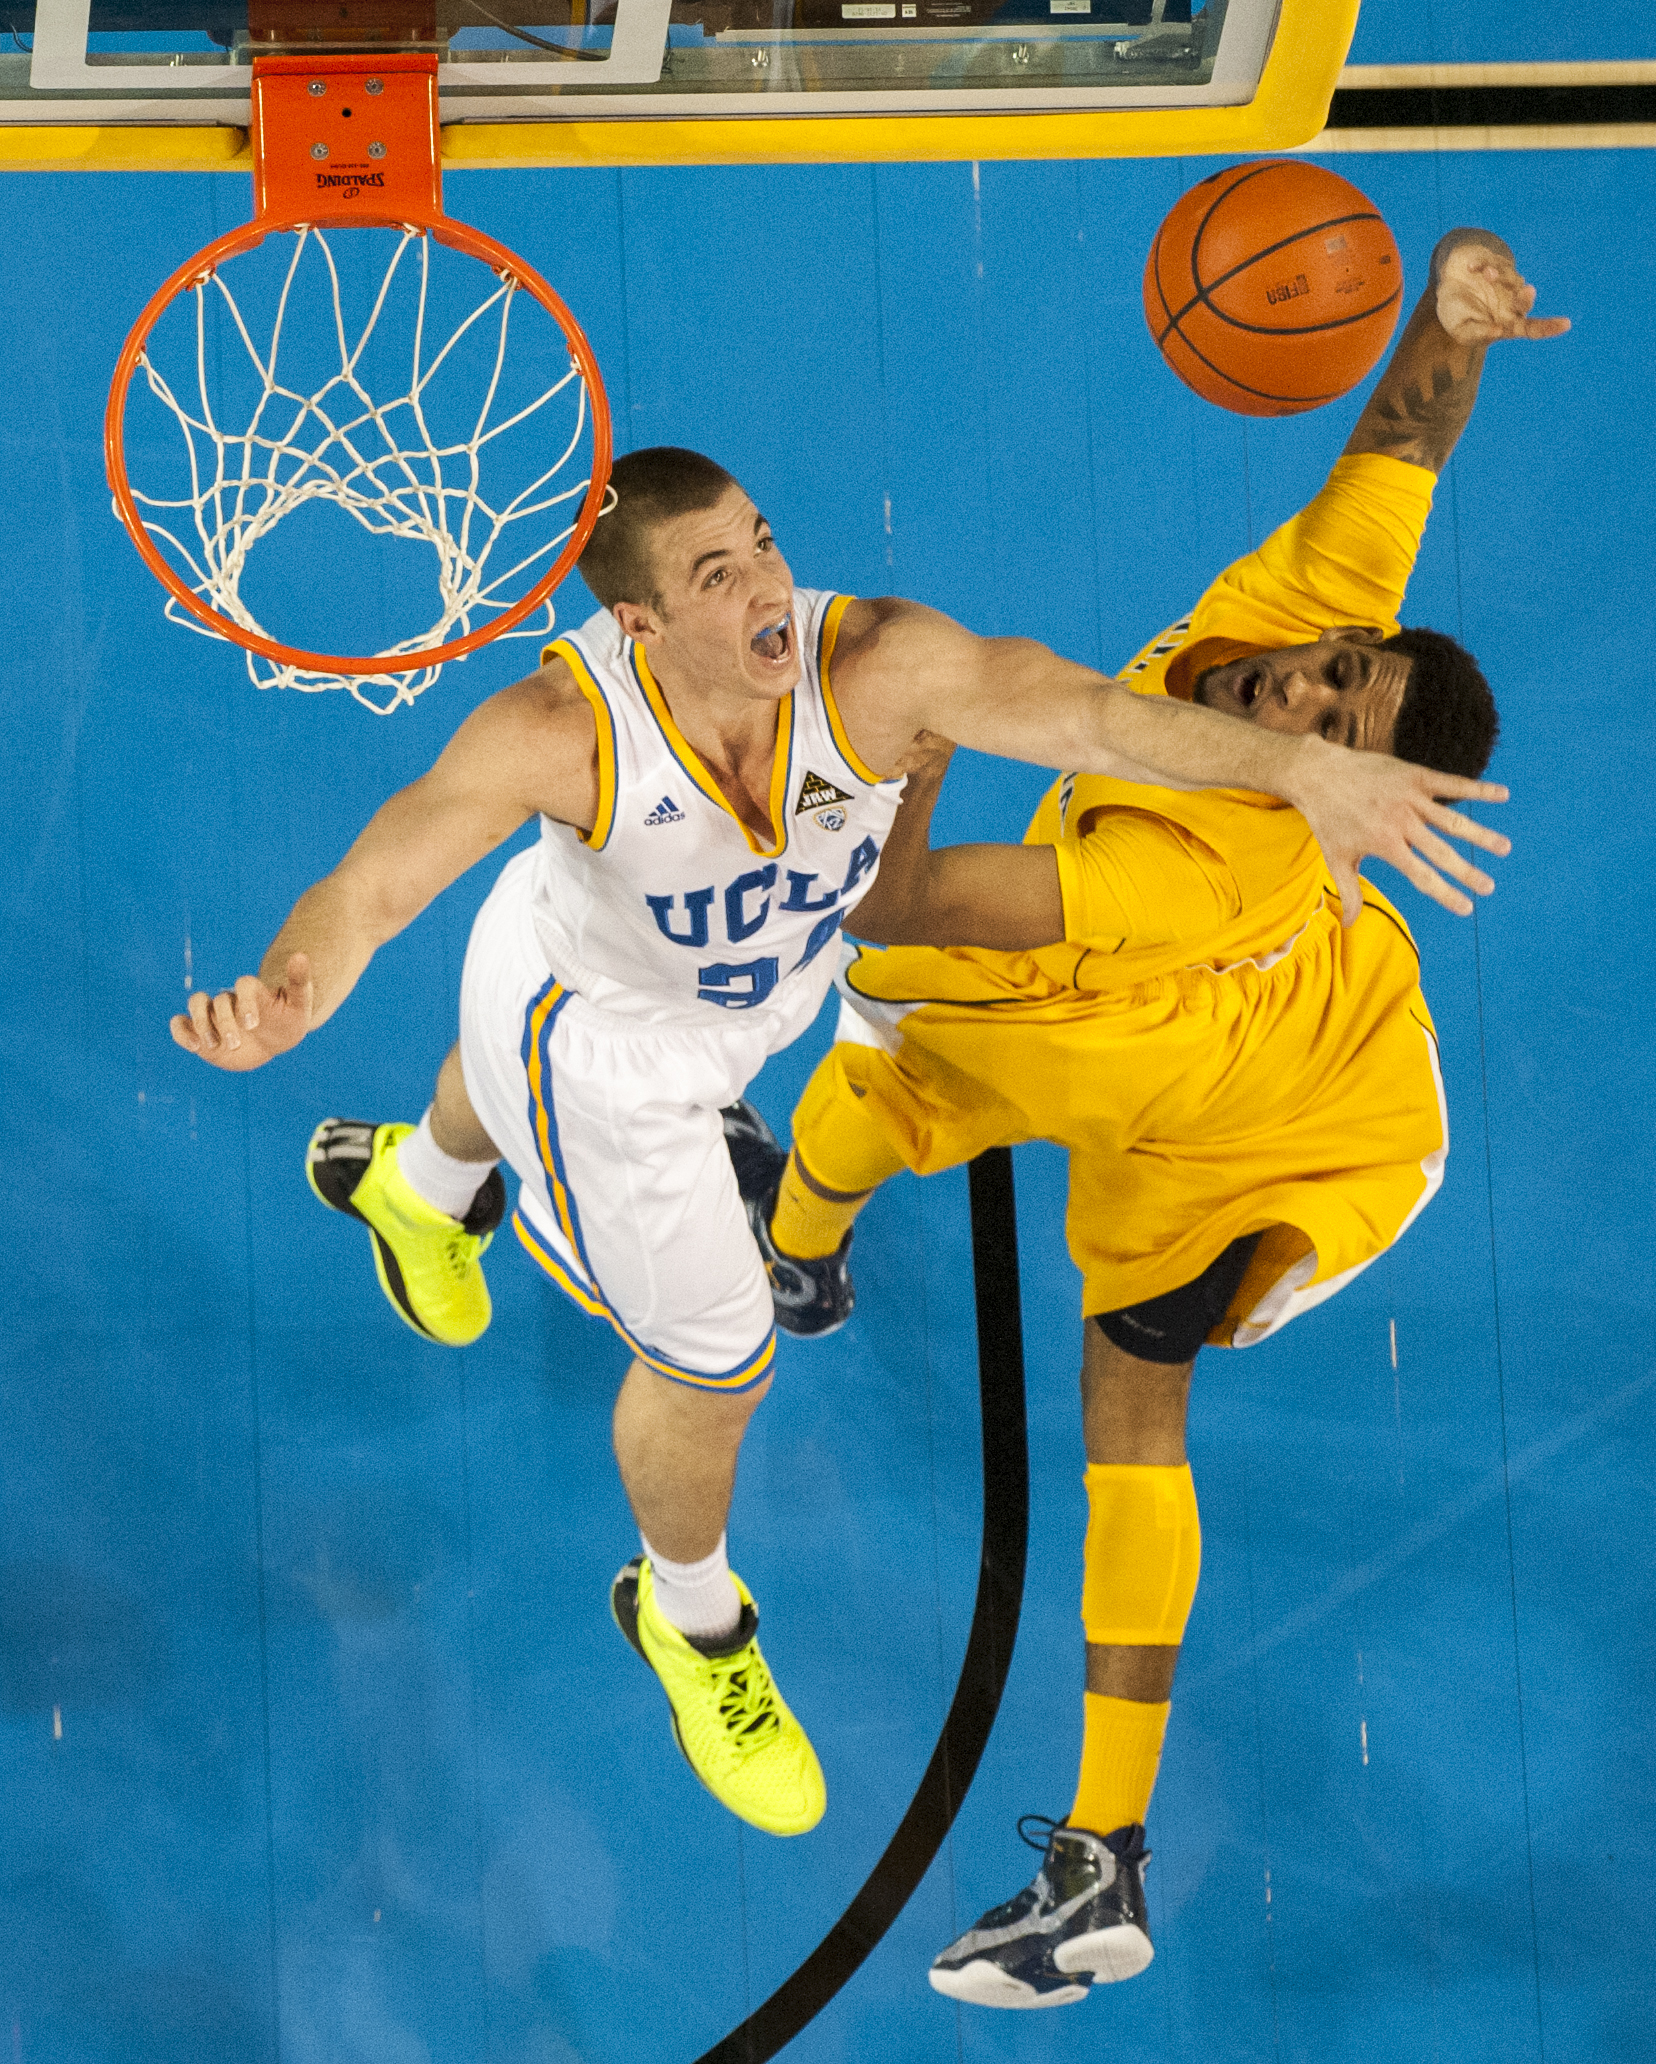 LOS ANGELES, CA – Redshirt junior forward Travis Wear blocks a layup by Cal Bears sophomore forward Christian Behrens at Pauley Pavilion on Thursday, January 3, 2013.